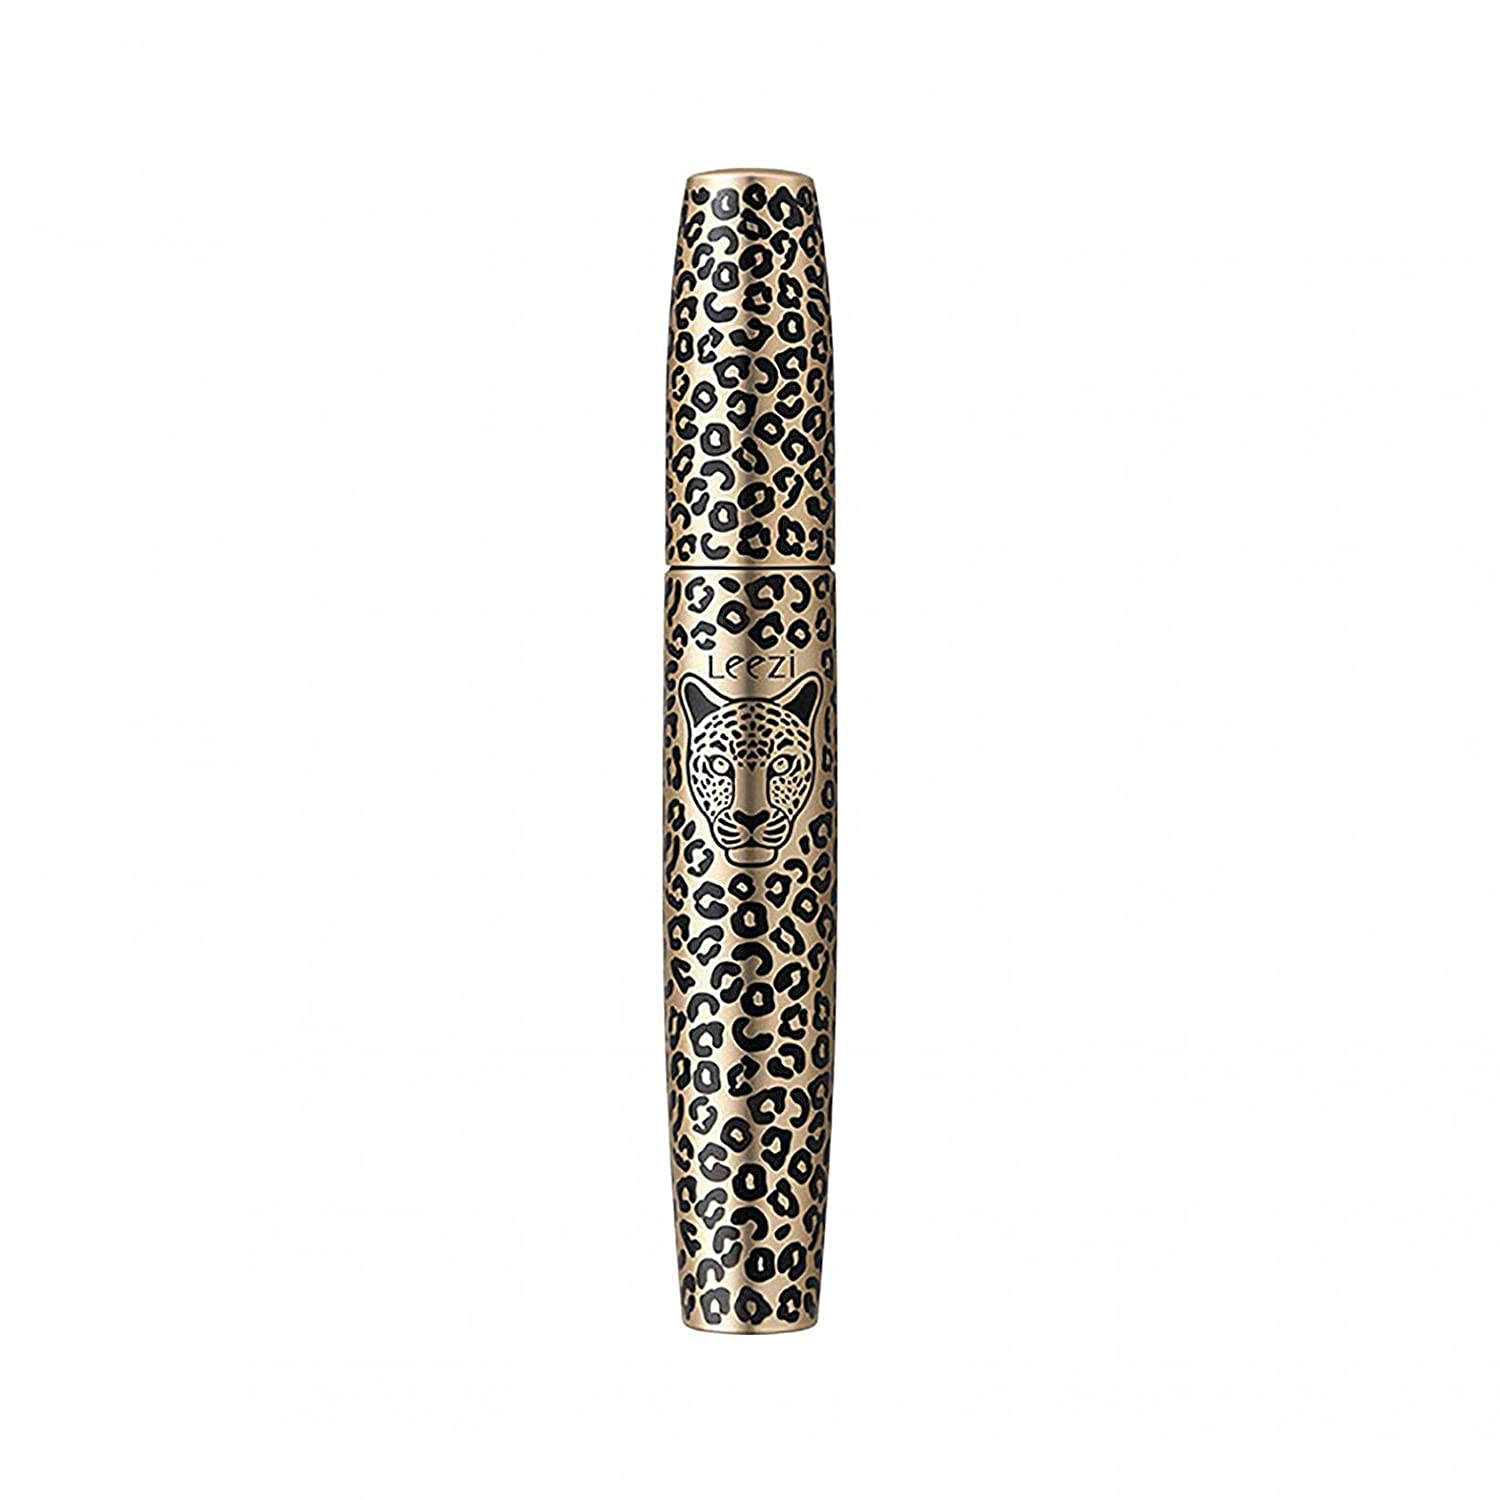 Wild Leopard Print Mascara For Long NEW Curls Smudging Thick No And Max 58% OFF